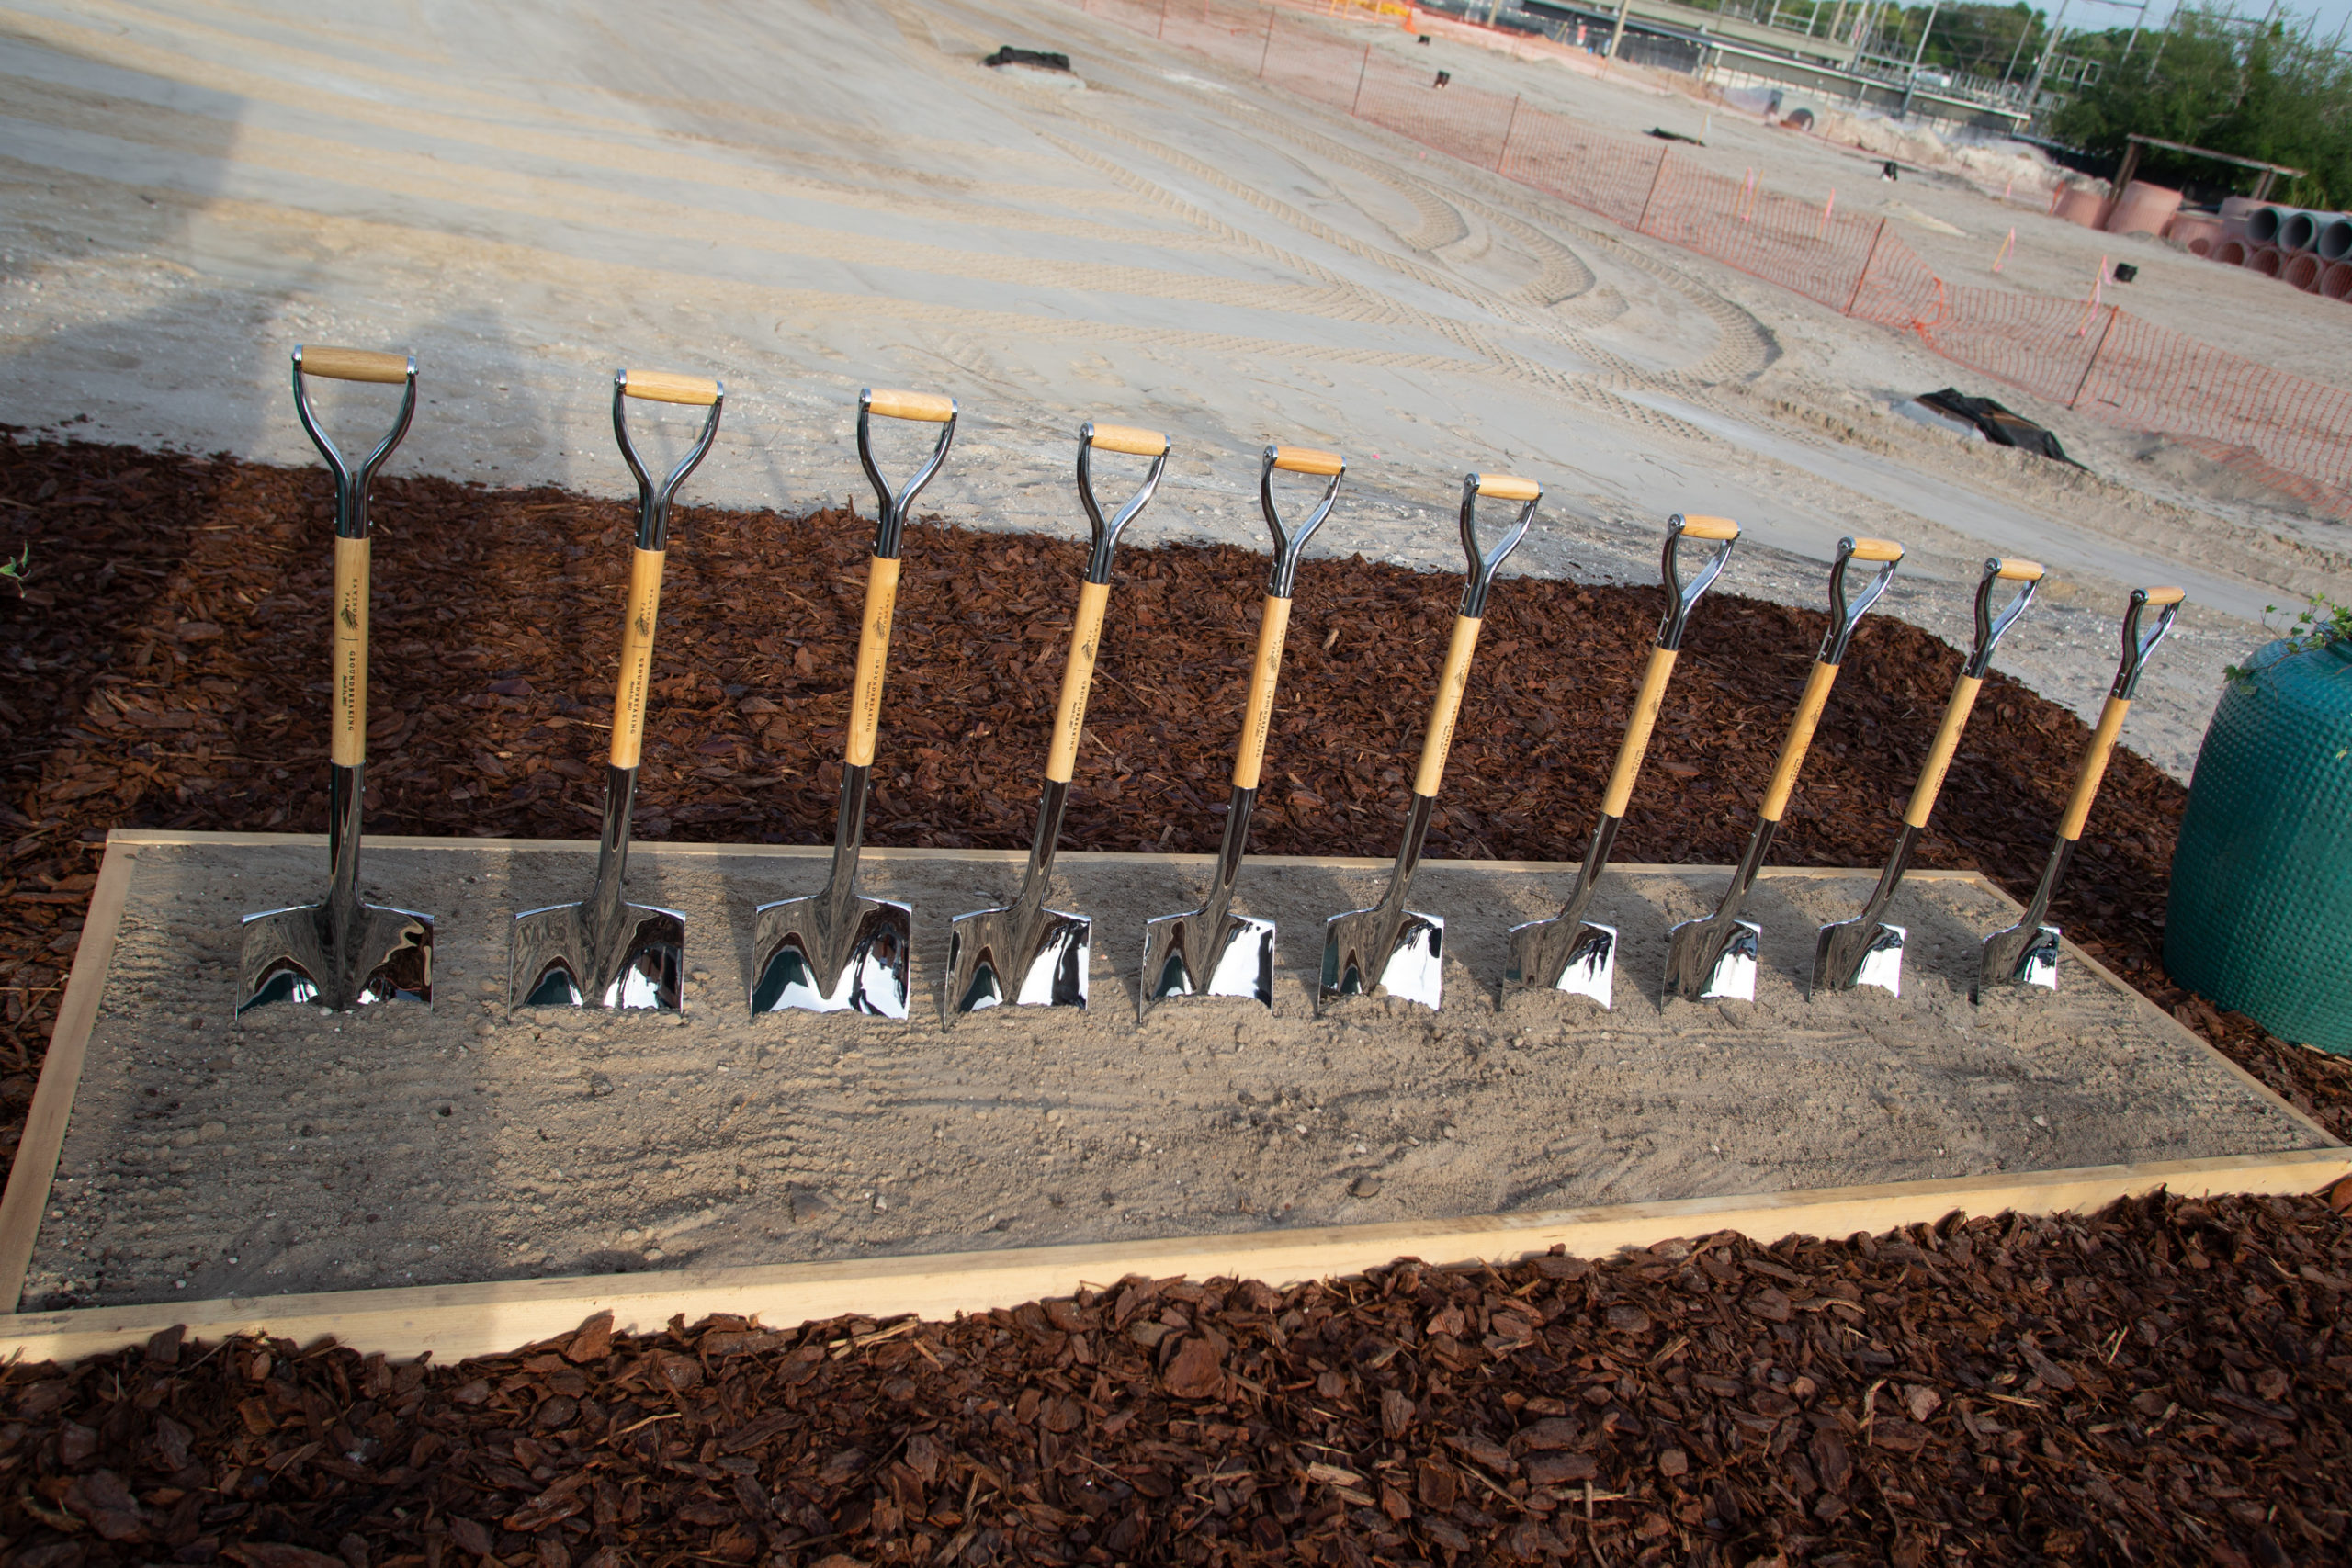 A row of partially dug-in shovels marking the groundbreaking of a project